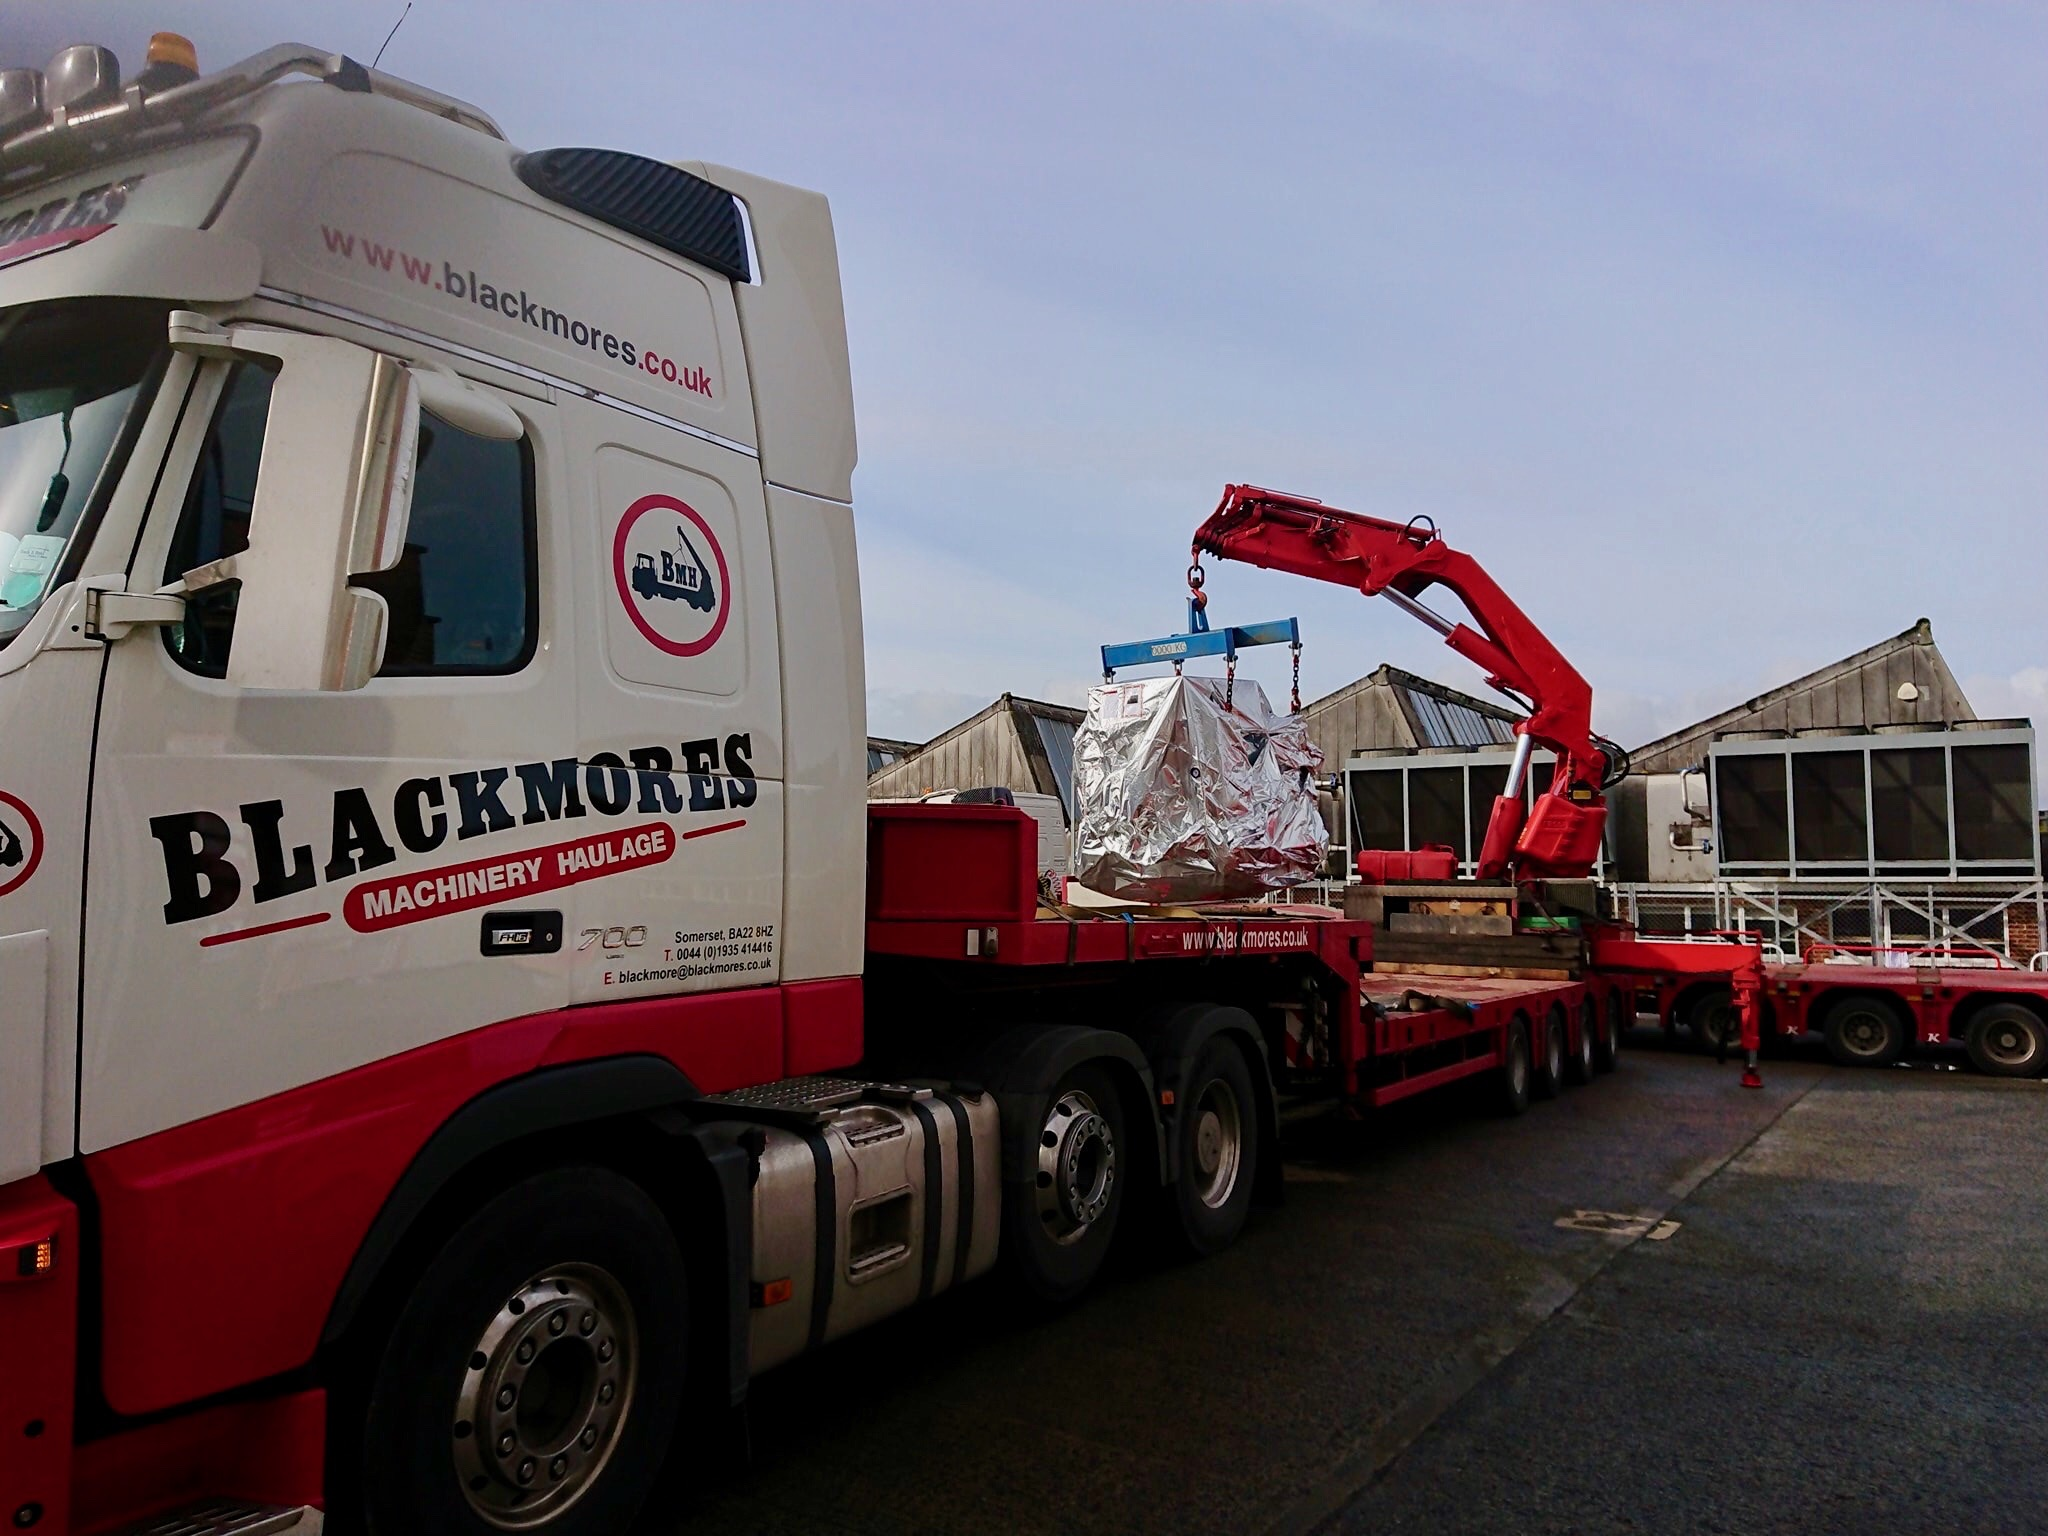 Blackmores - Heavy Load being lifted on to truck